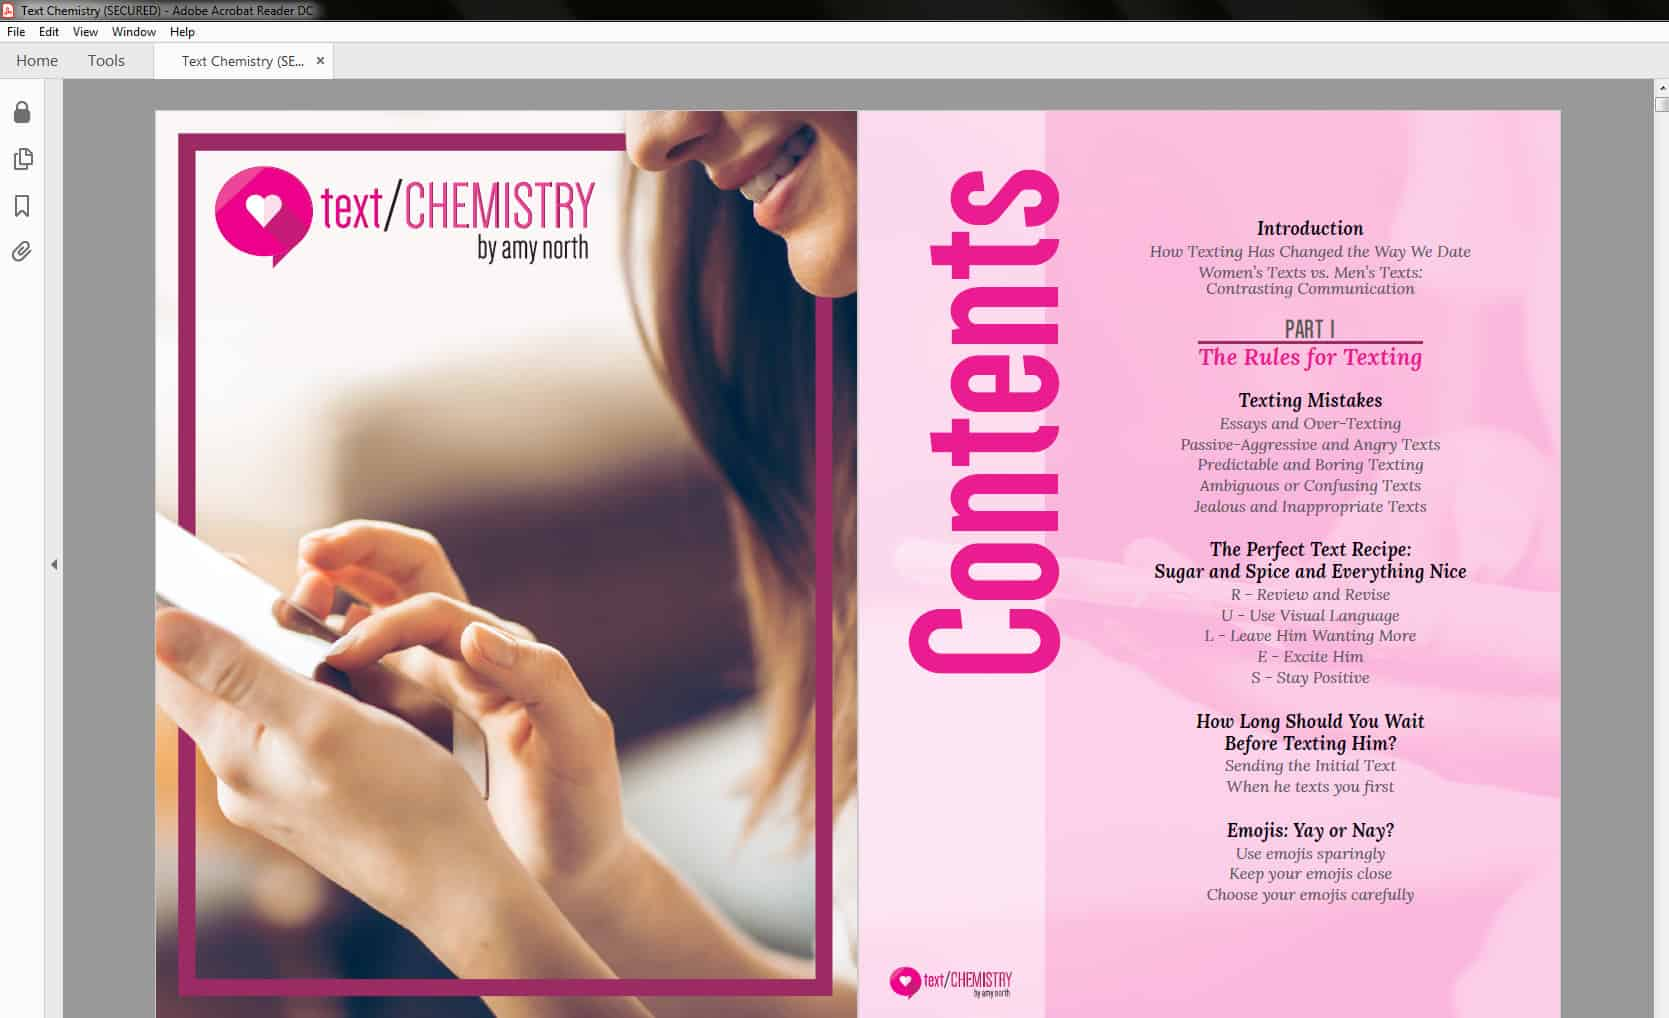 Text Chemistry Review: Can This Guide Really Help You? Does